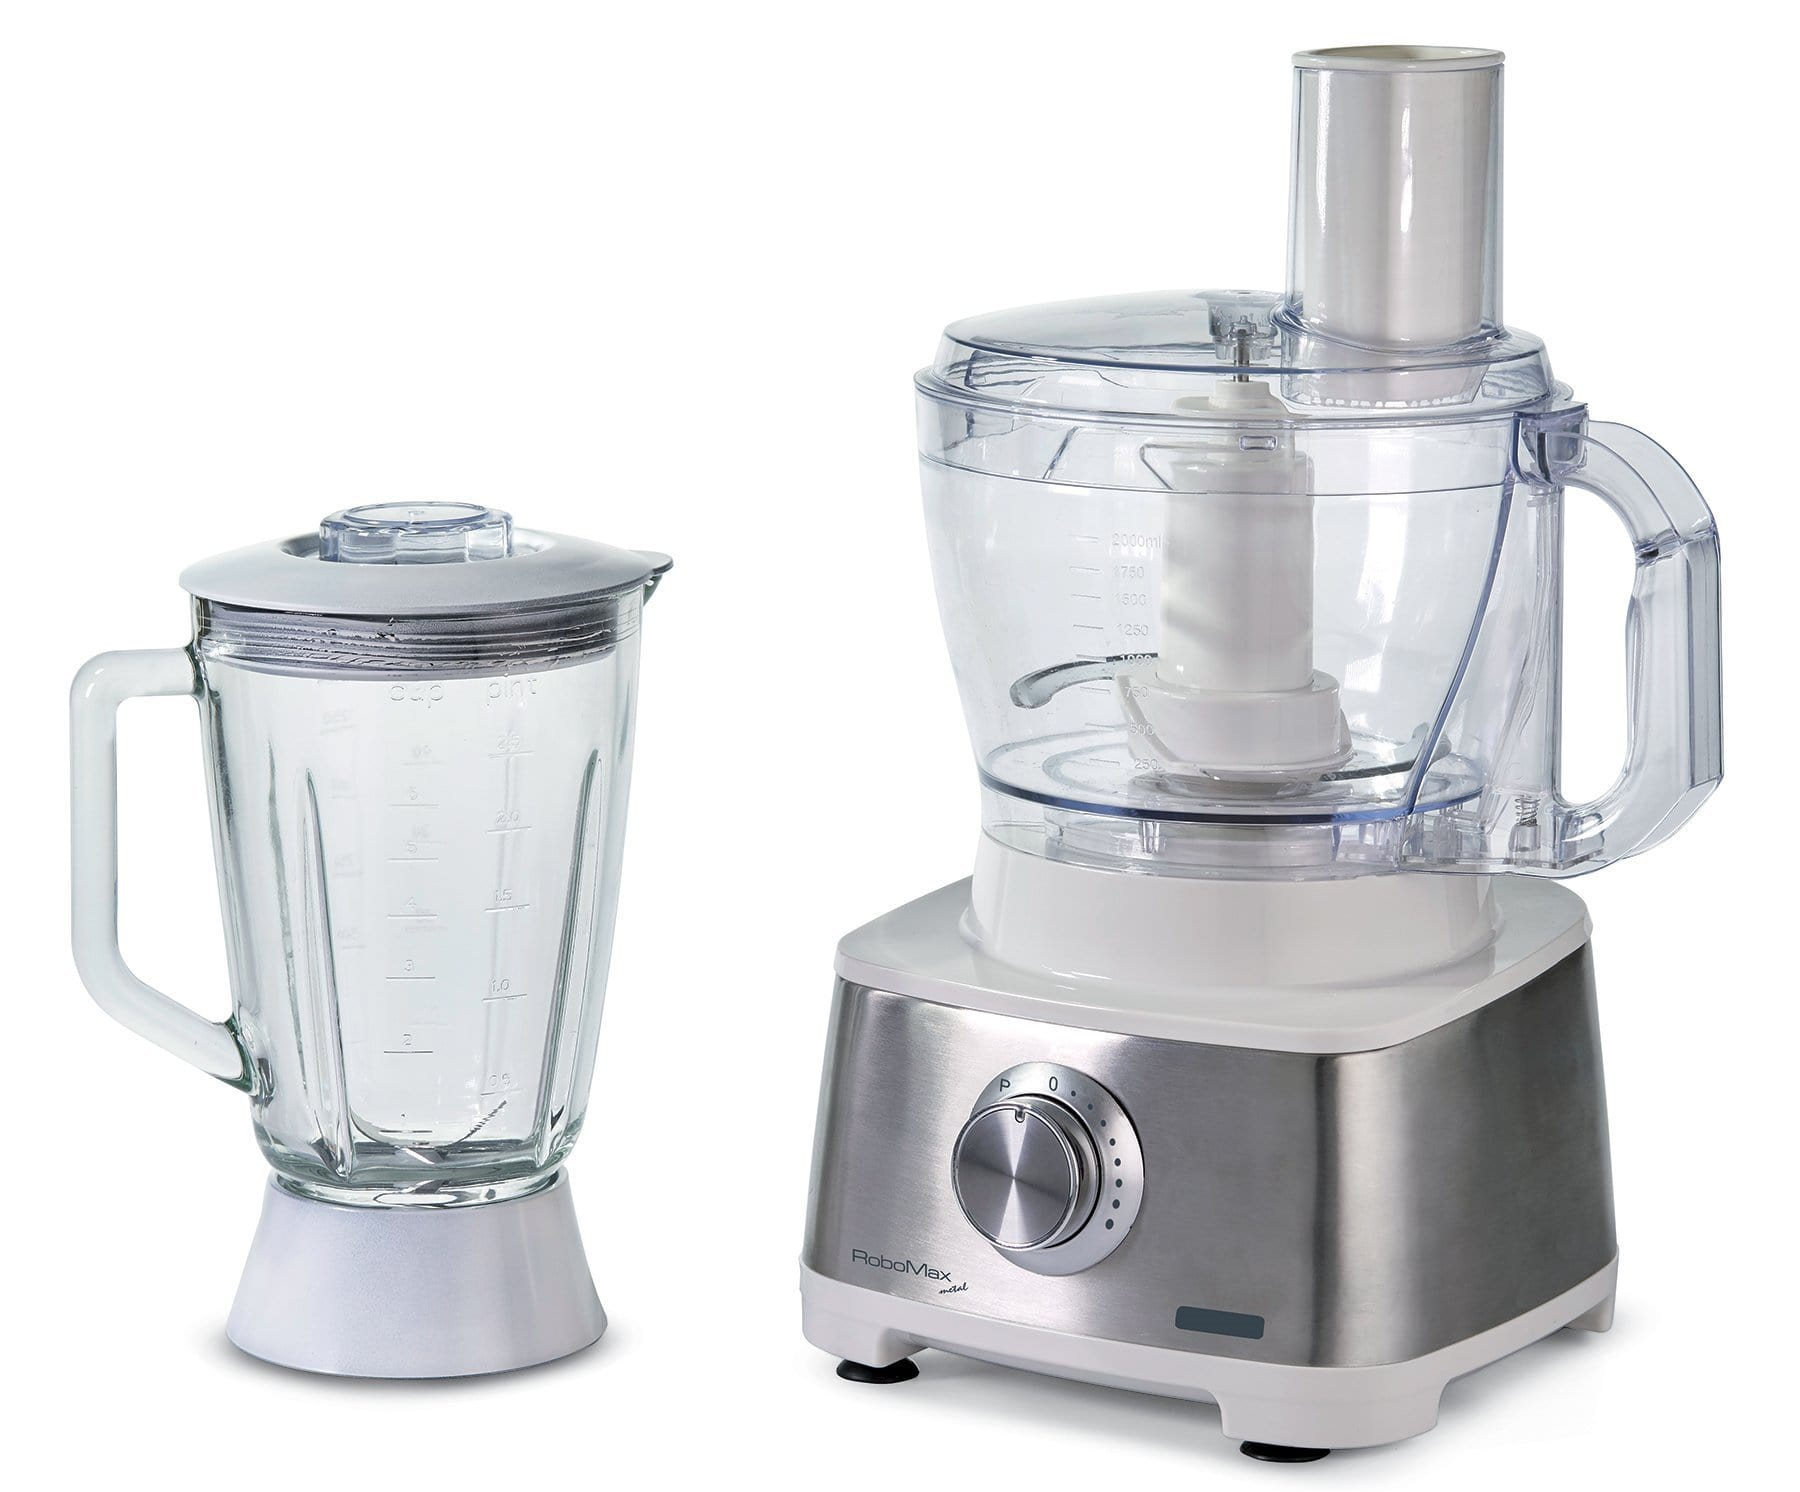 Ariete 1783 Electric food processor & blender exxab.com